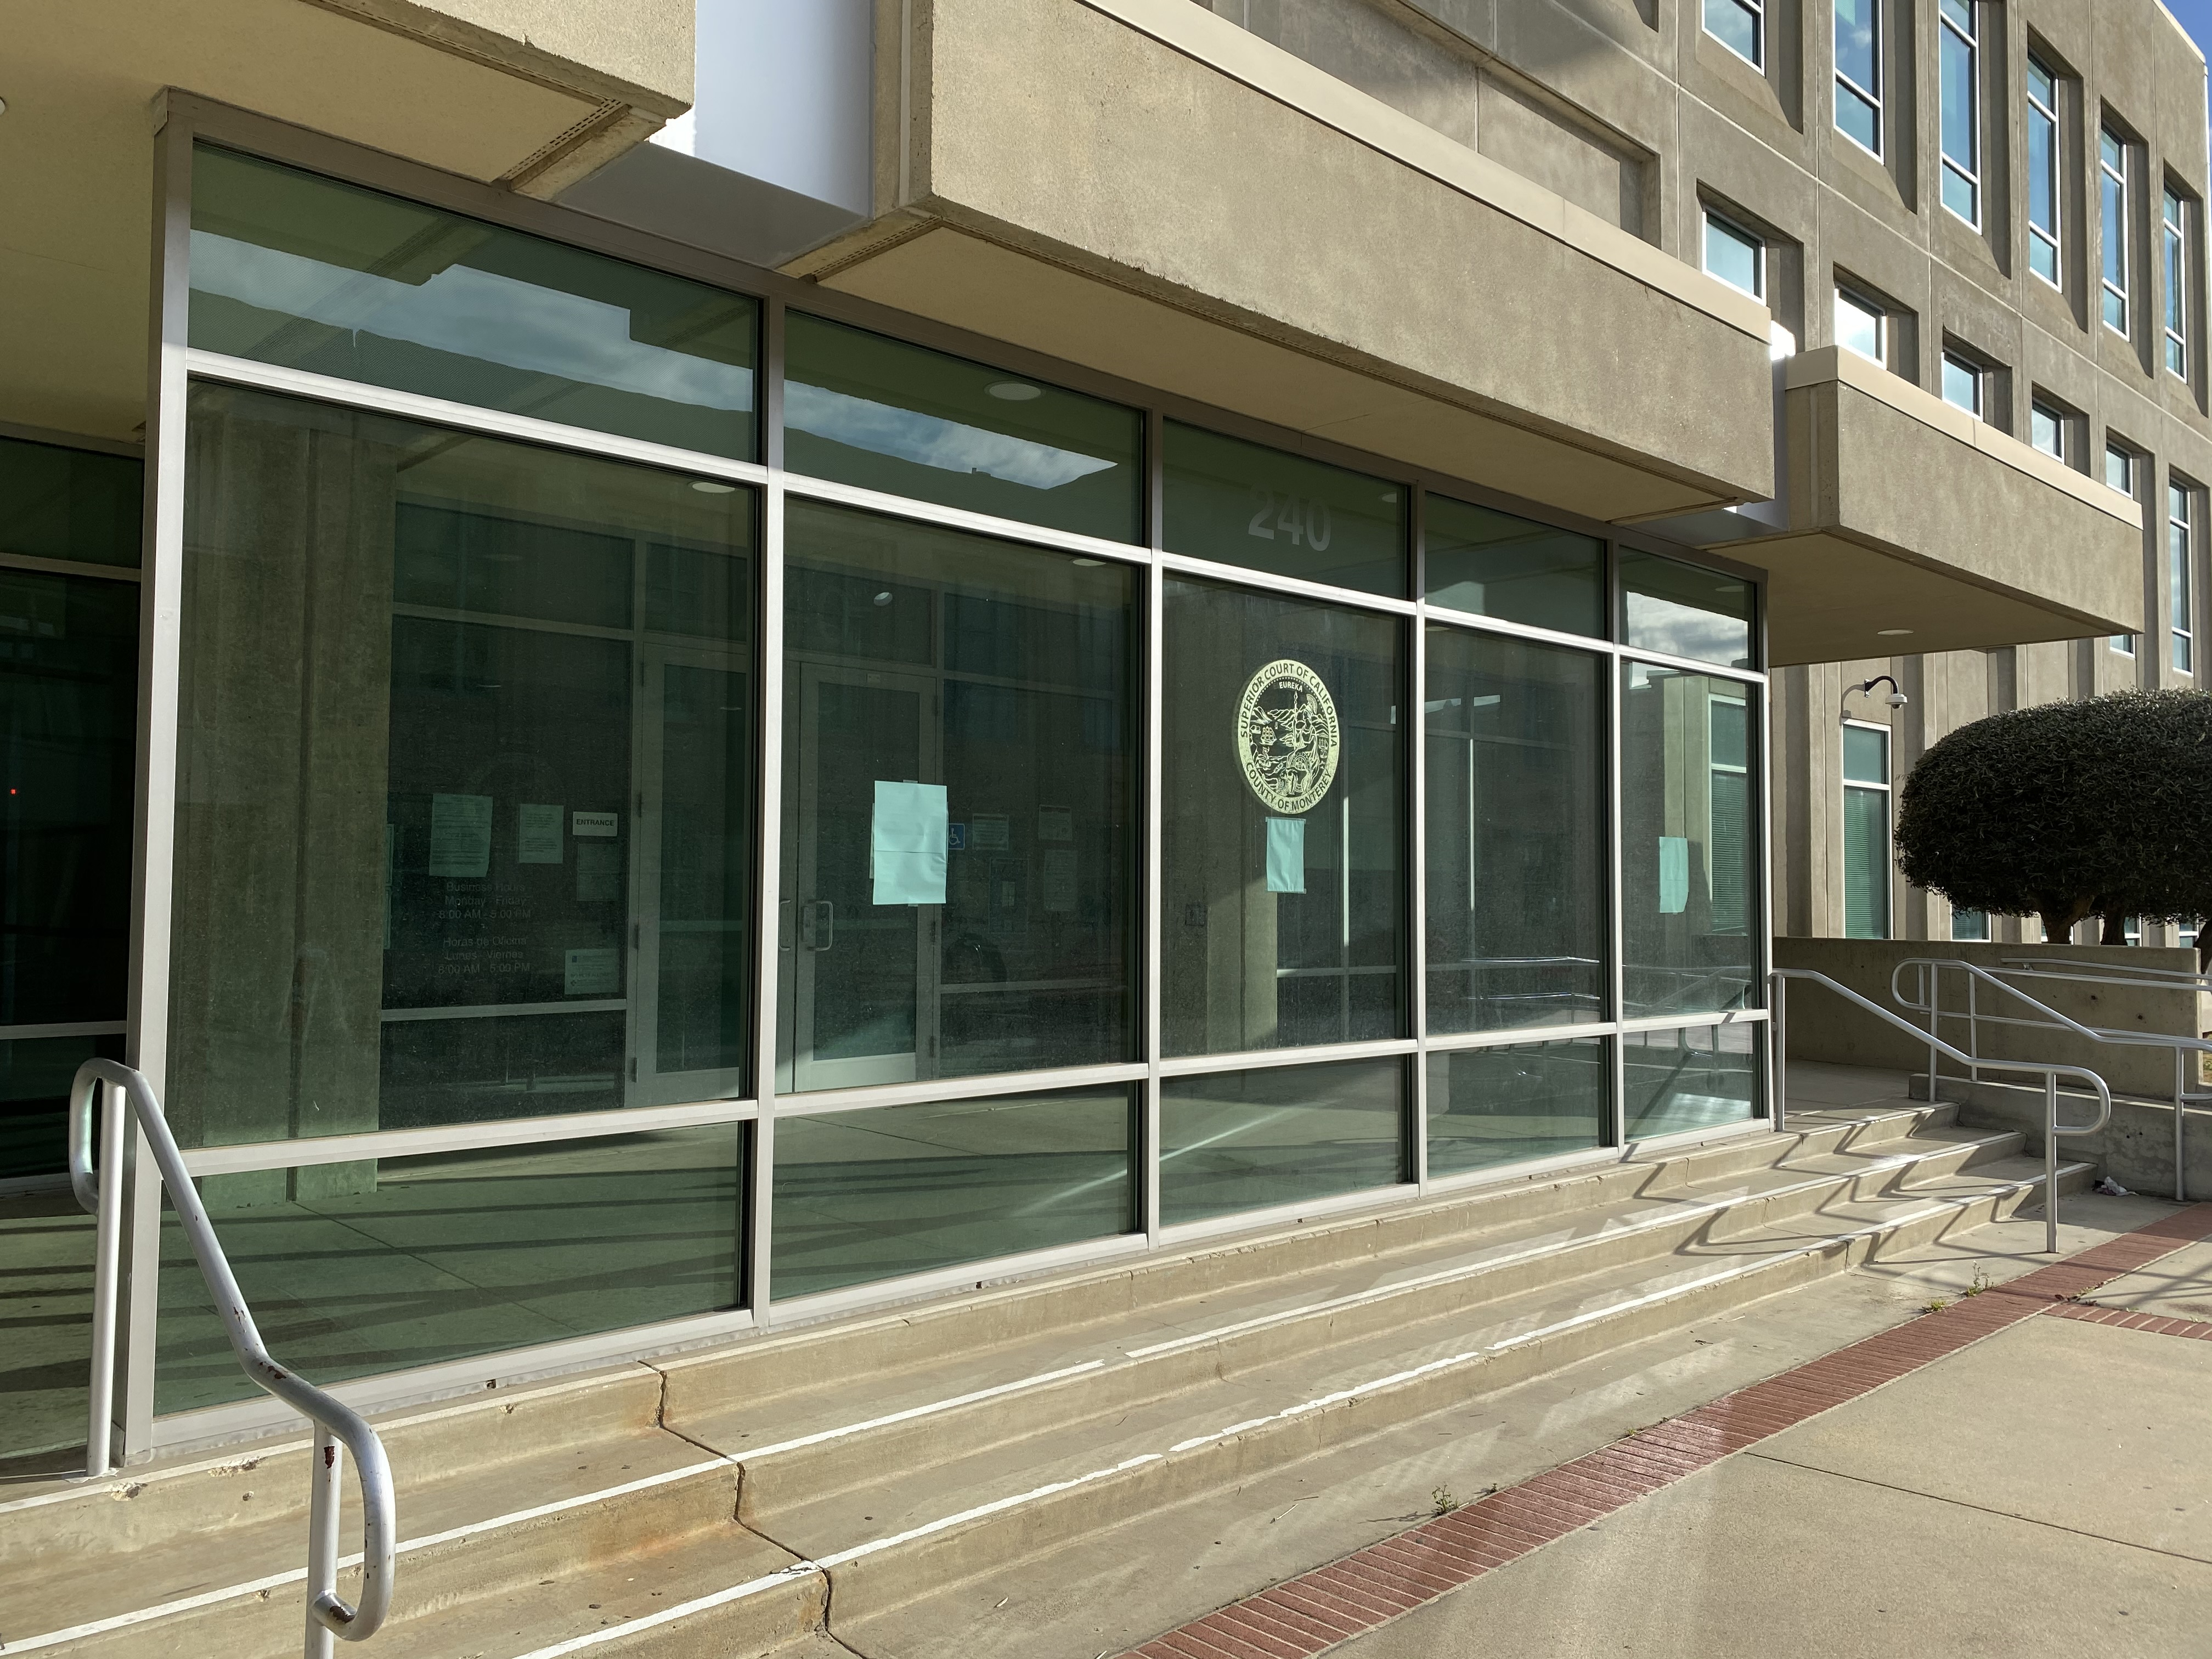 Covid 19: Monterey County Superior Court Issues Revised For Monterey County Superior Court Schedule